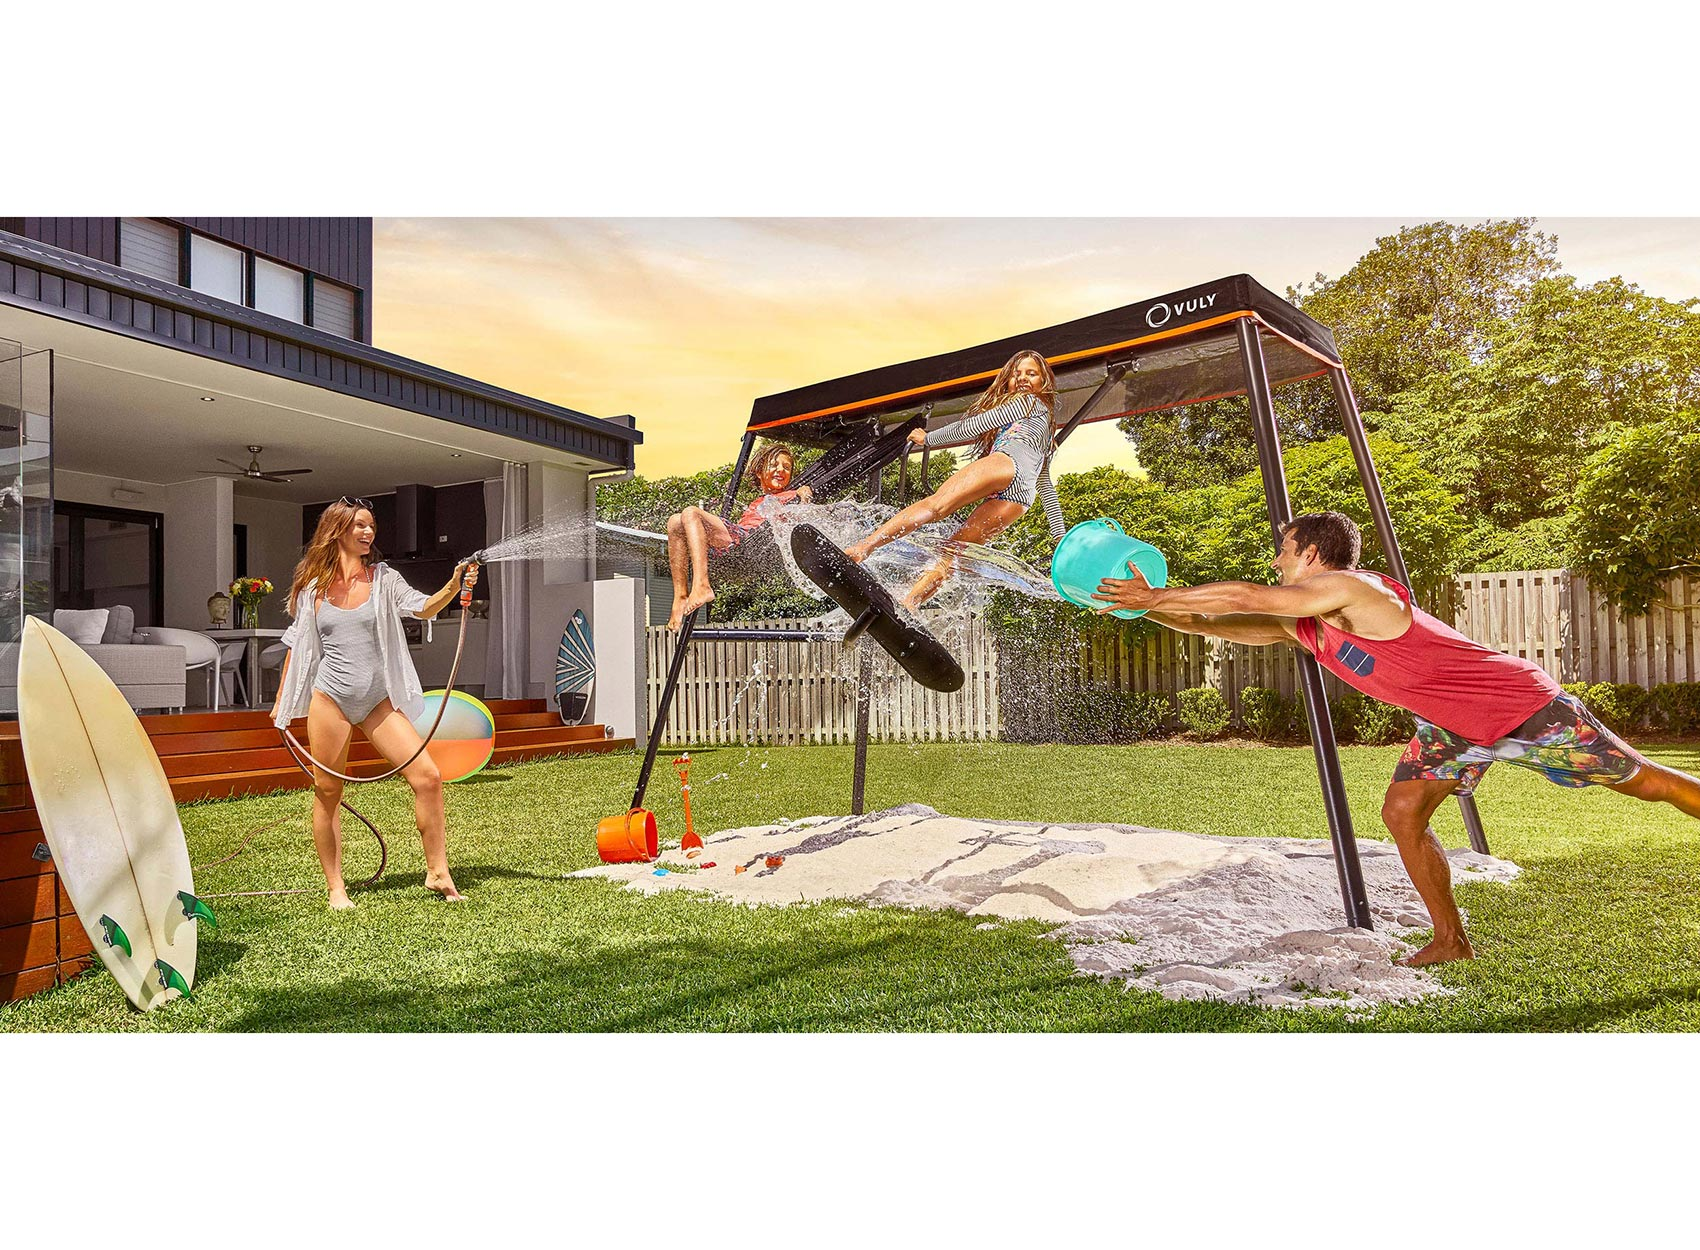 Nothing gets kids outside quite like the 360 Pro swing set and basketball.